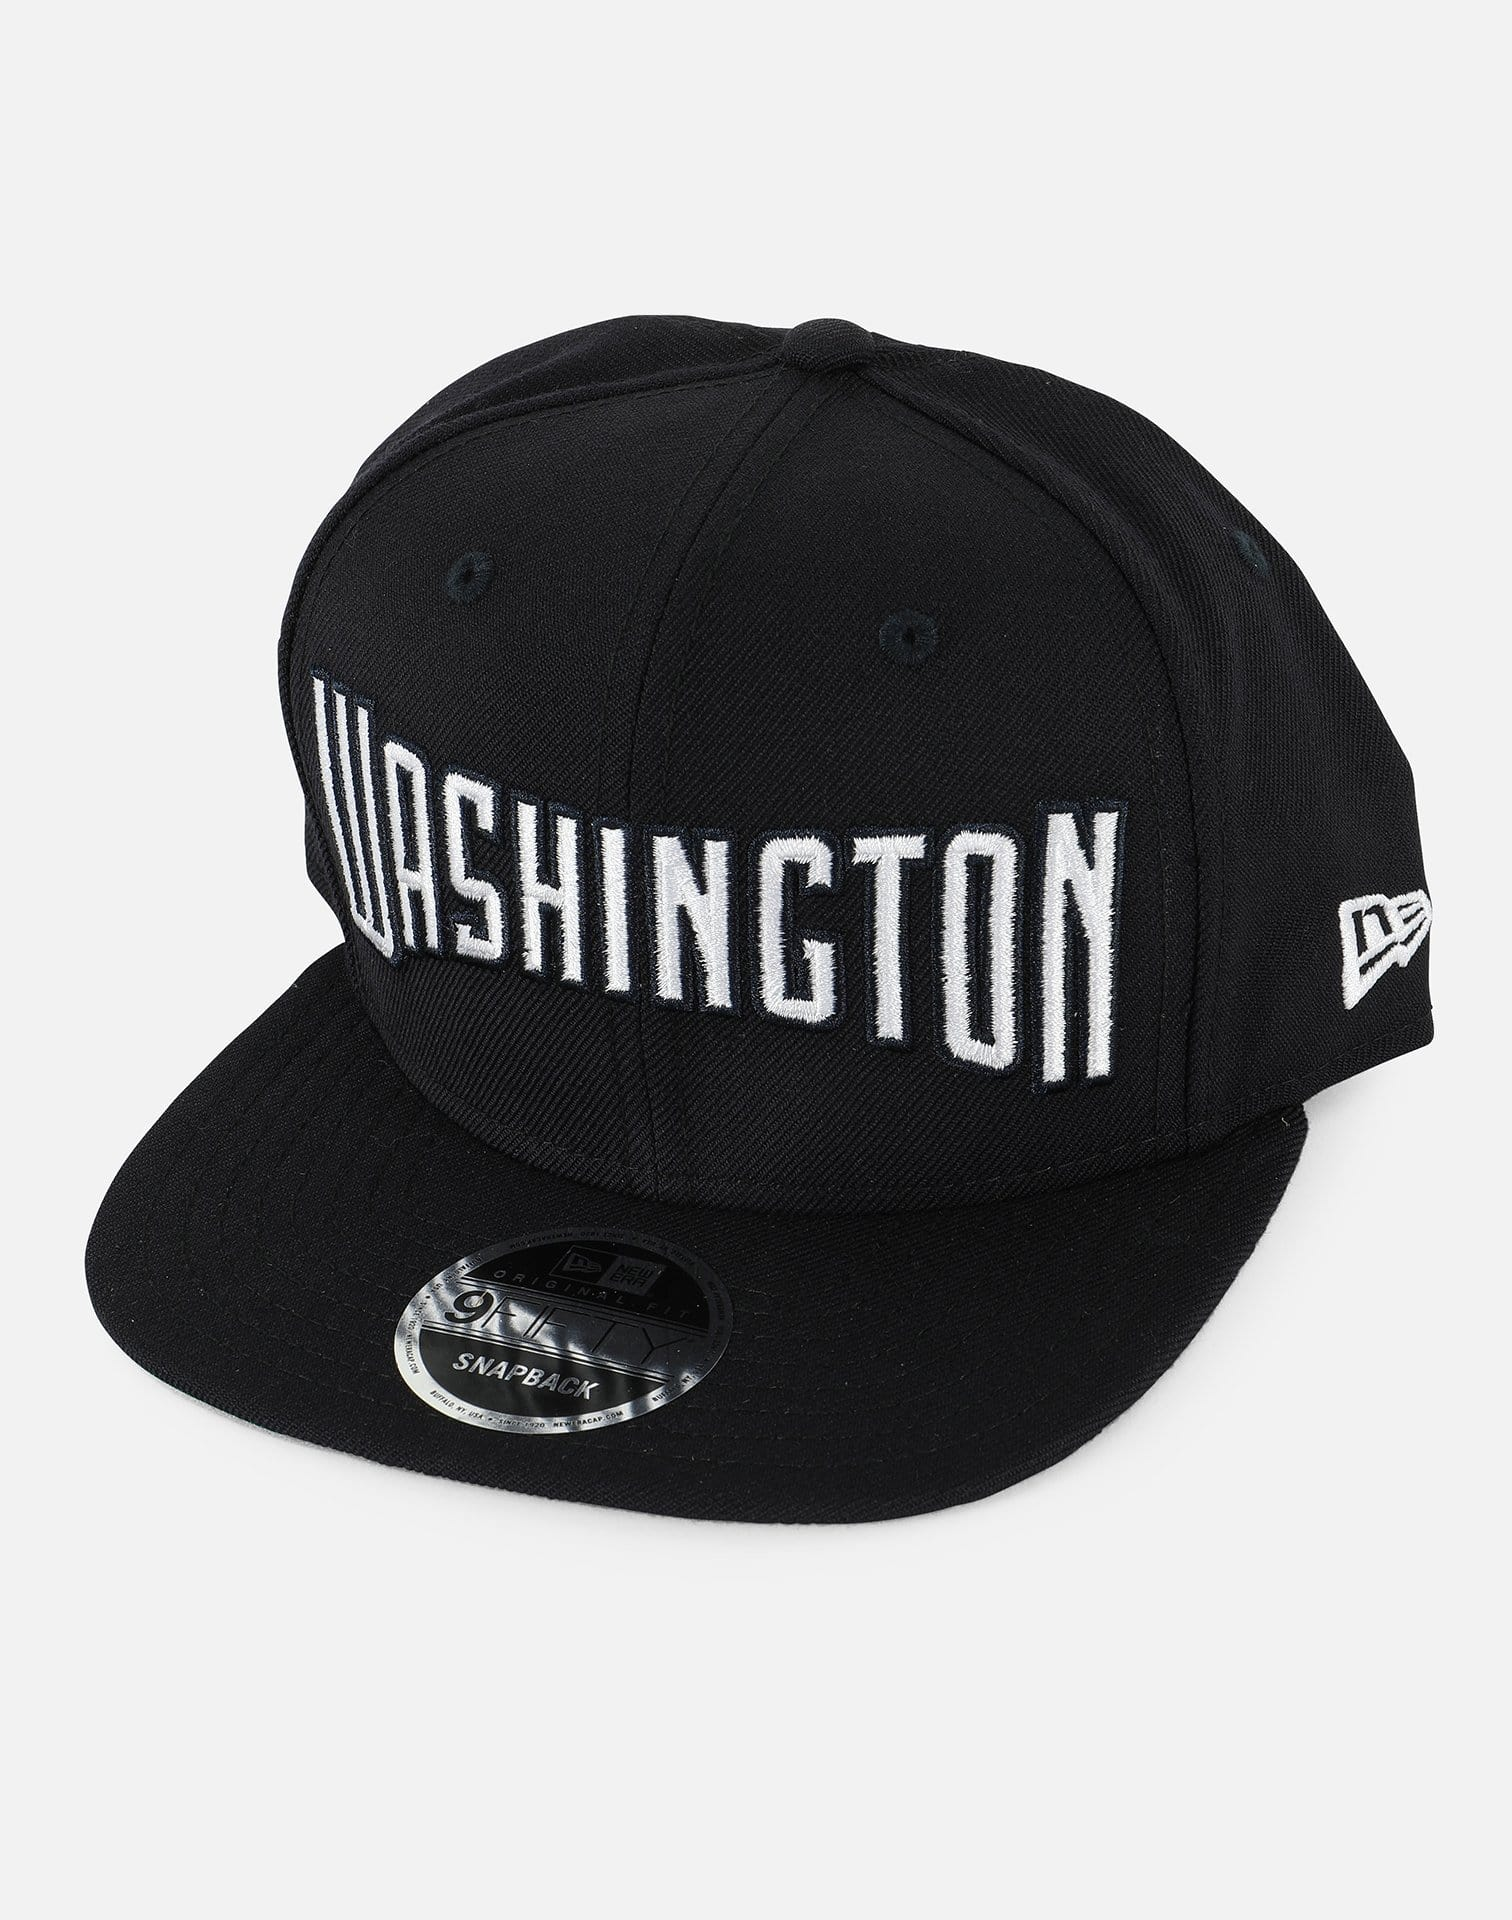 New Era MLB Washington Nationals 950 Snapback Hat